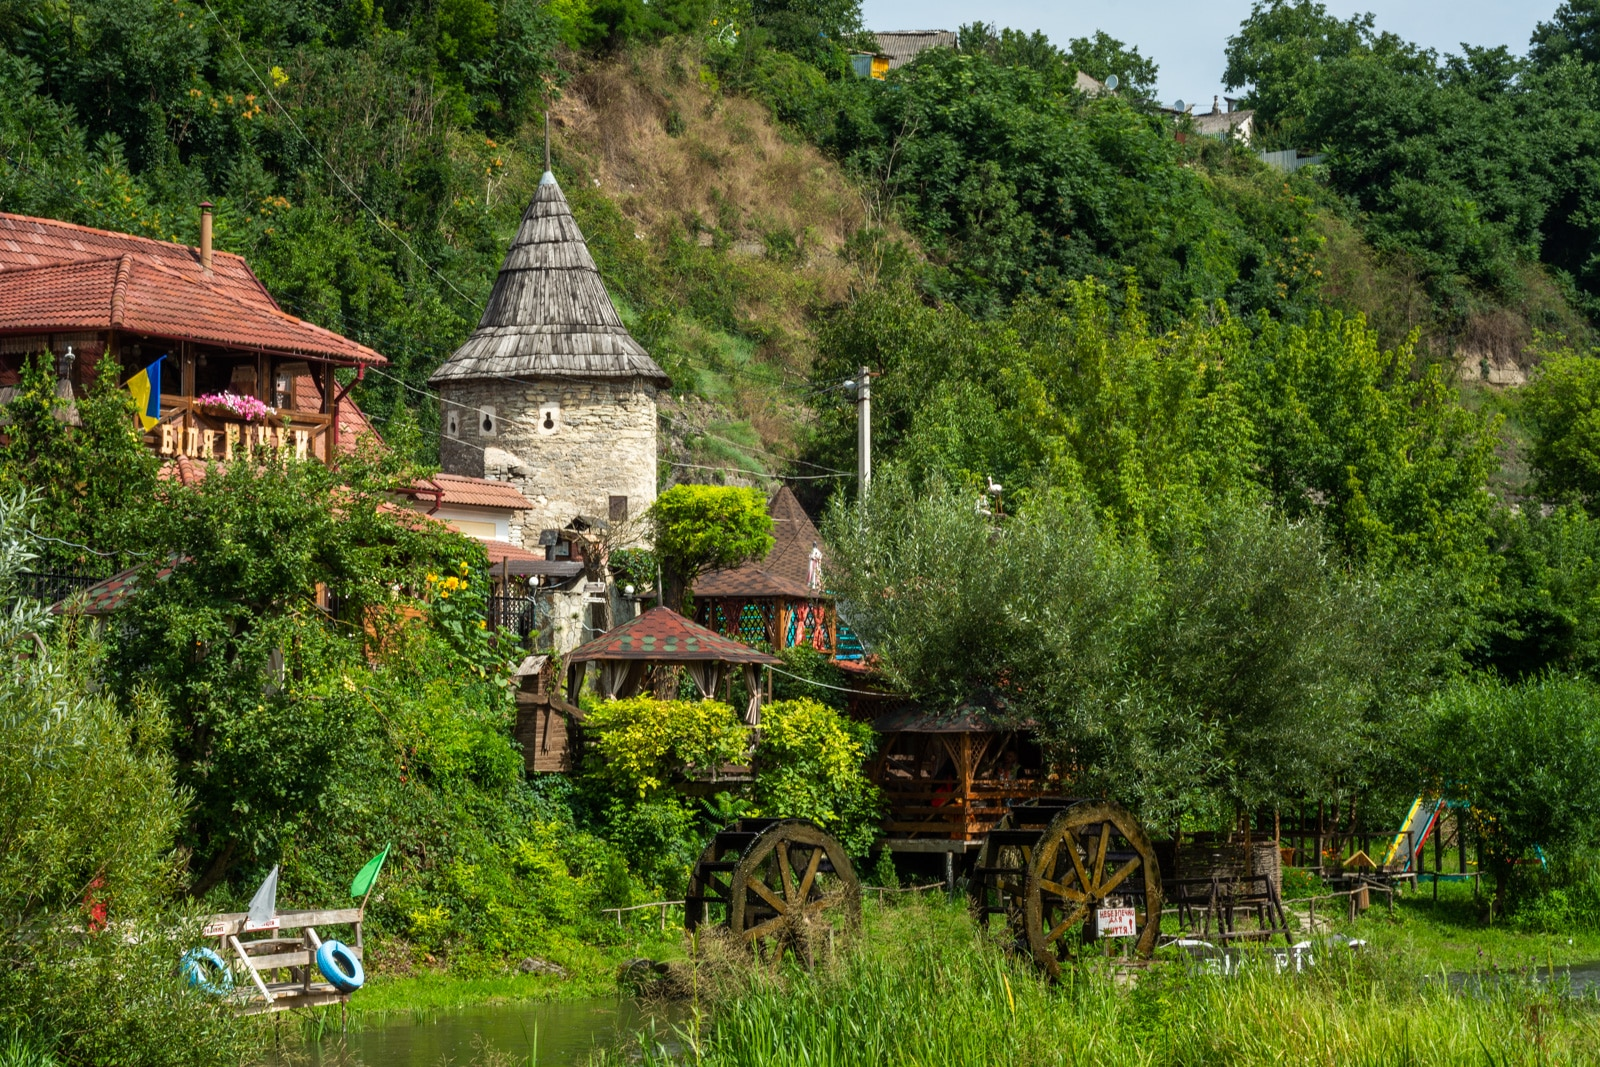 Carpathian village in Ukraine